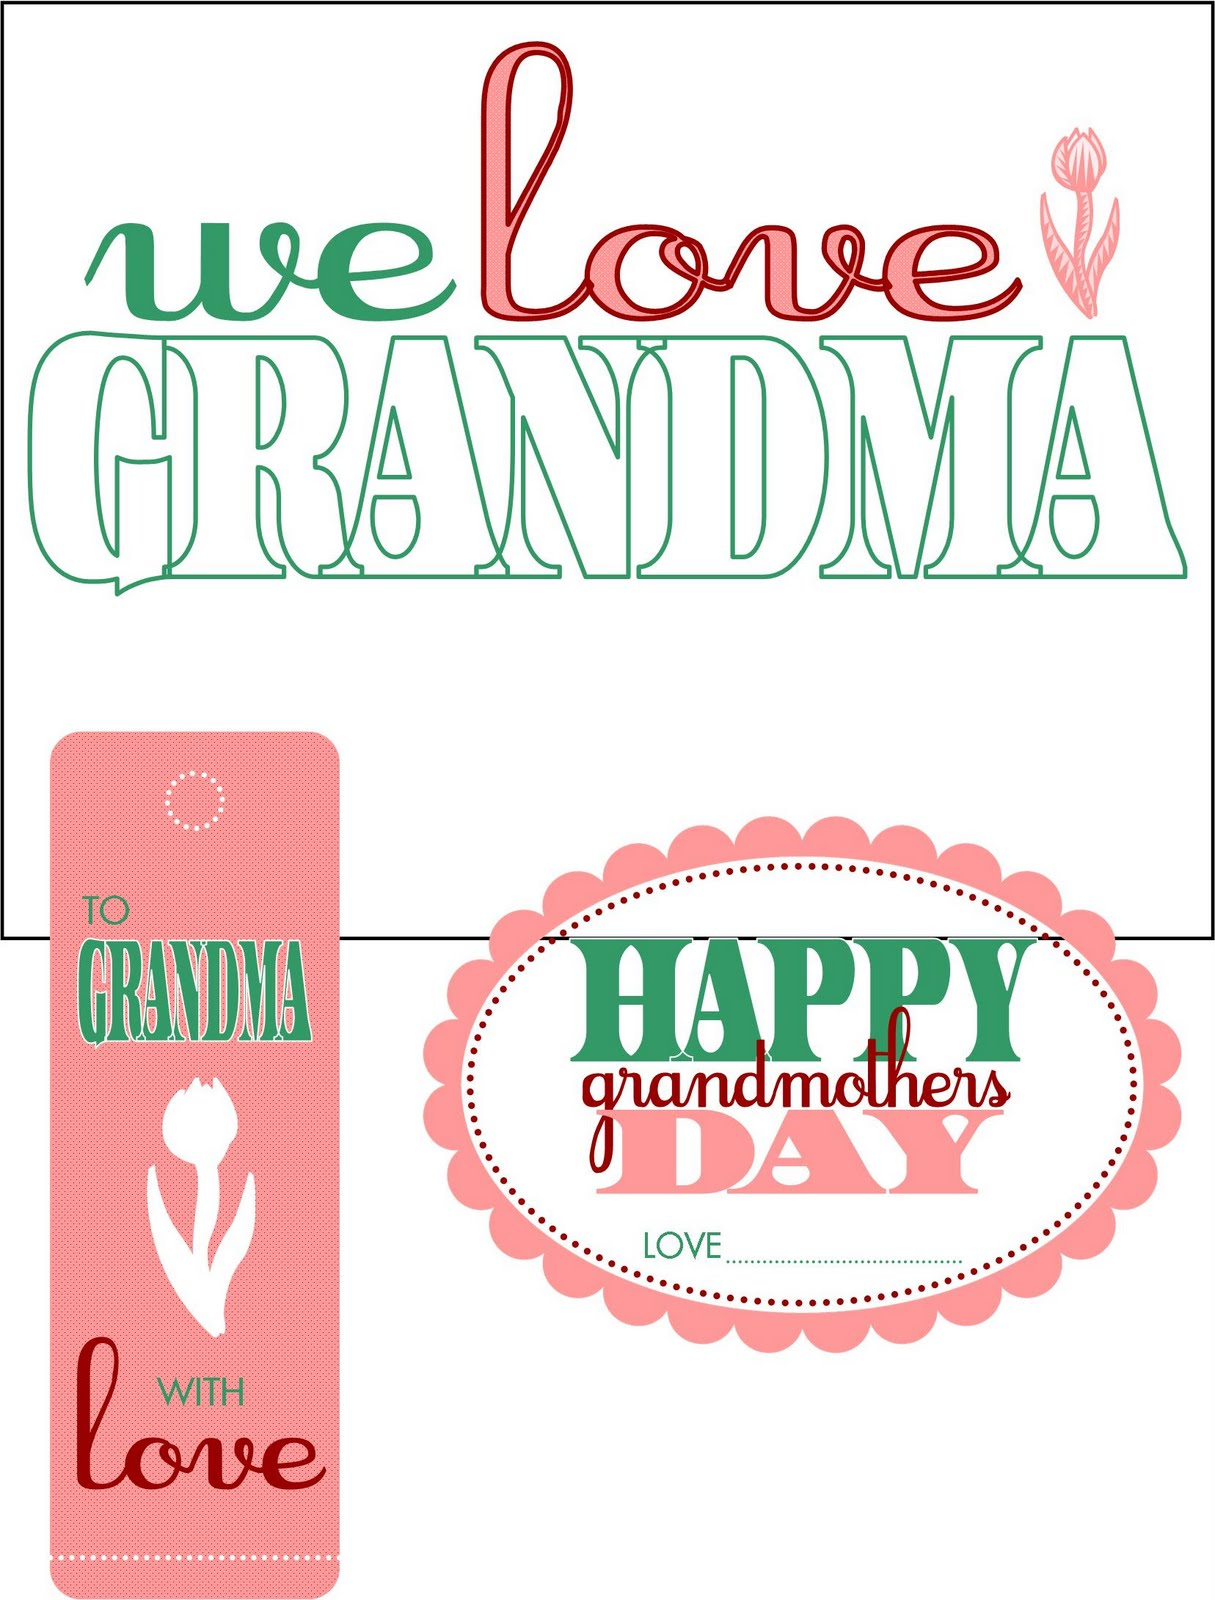 On The Grandma Coloring Page I Left A Little Room. 1215 x 1600.Valentine's Day Cards To Color Printable